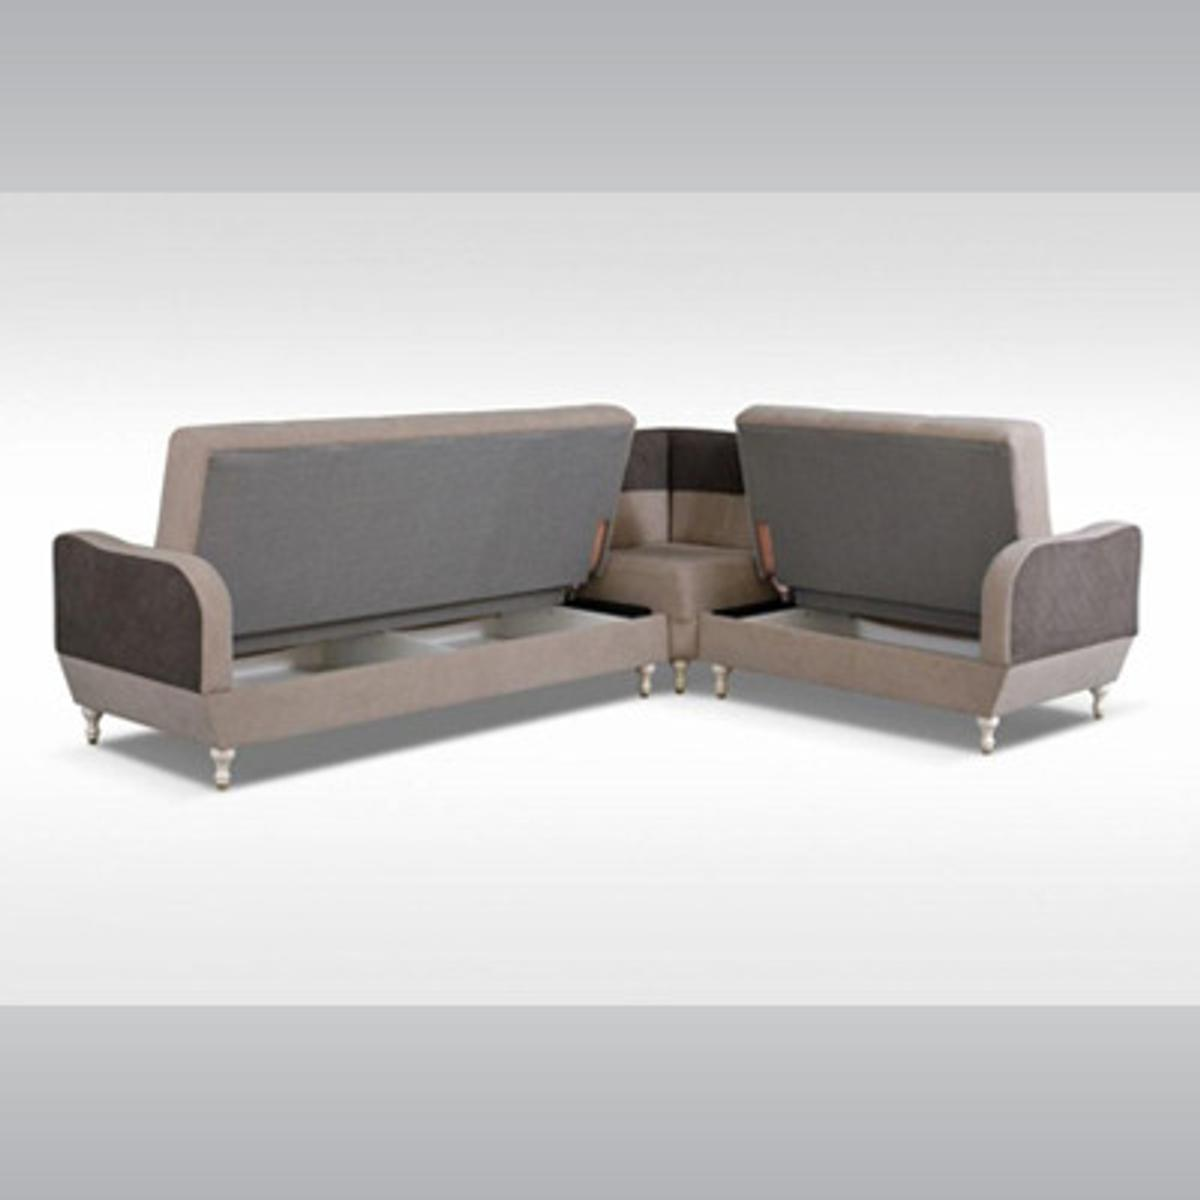 Sofa Foam Leeds Rafael Corner Sofa In Ls19 Leeds For 499 99 For